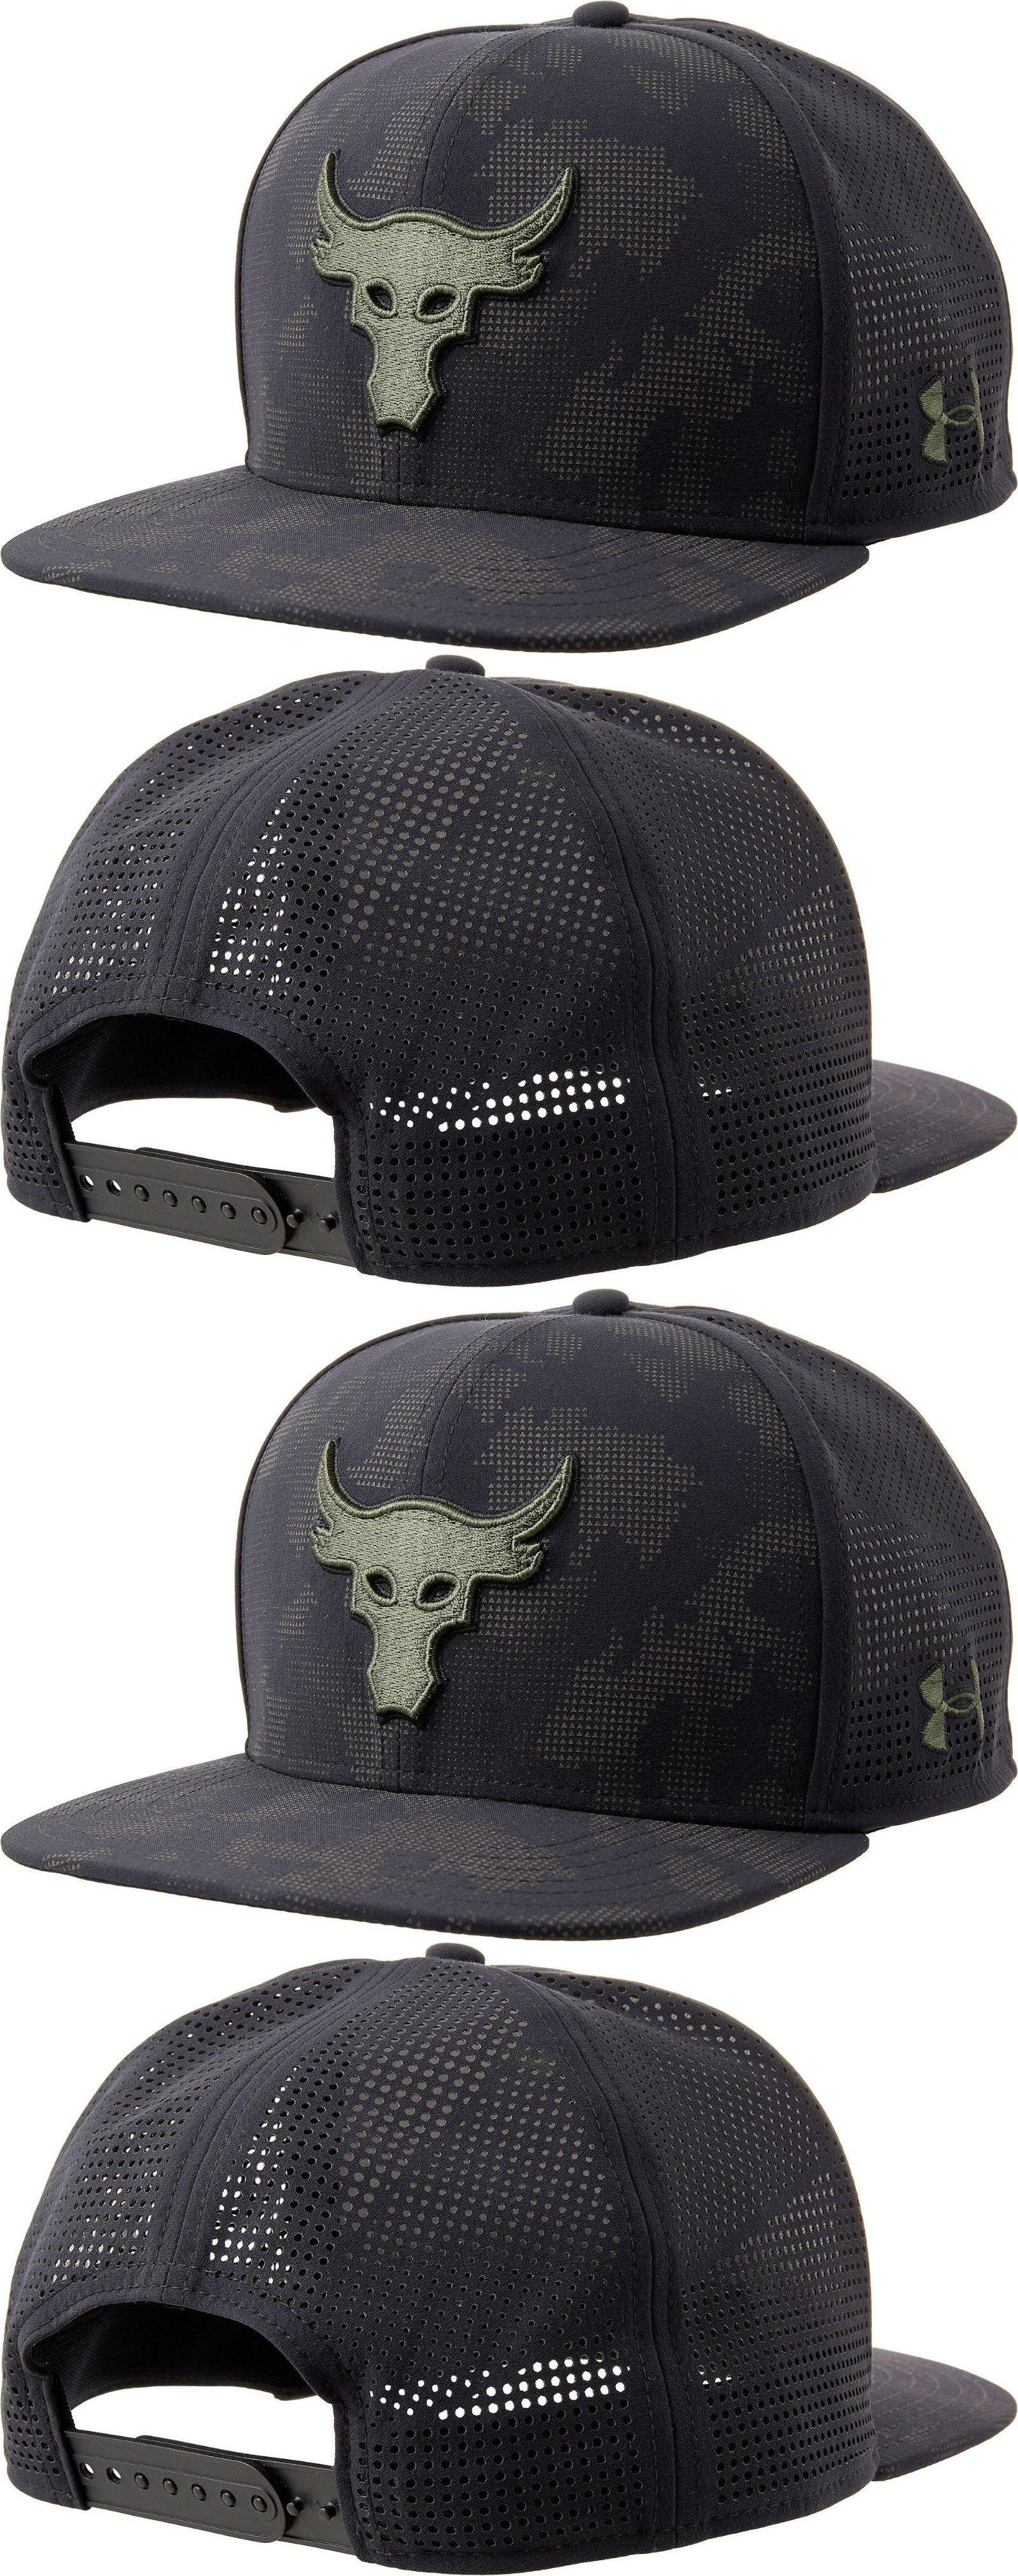 74e55b366a5e4 Mens Accessories 4250  Under Armour Mens Ua X Project Rock Mesh Back  Supervent Snapback Cap Flat Hat -  BUY IT NOW ONLY   39.99 on  eBay   accessories  under ...